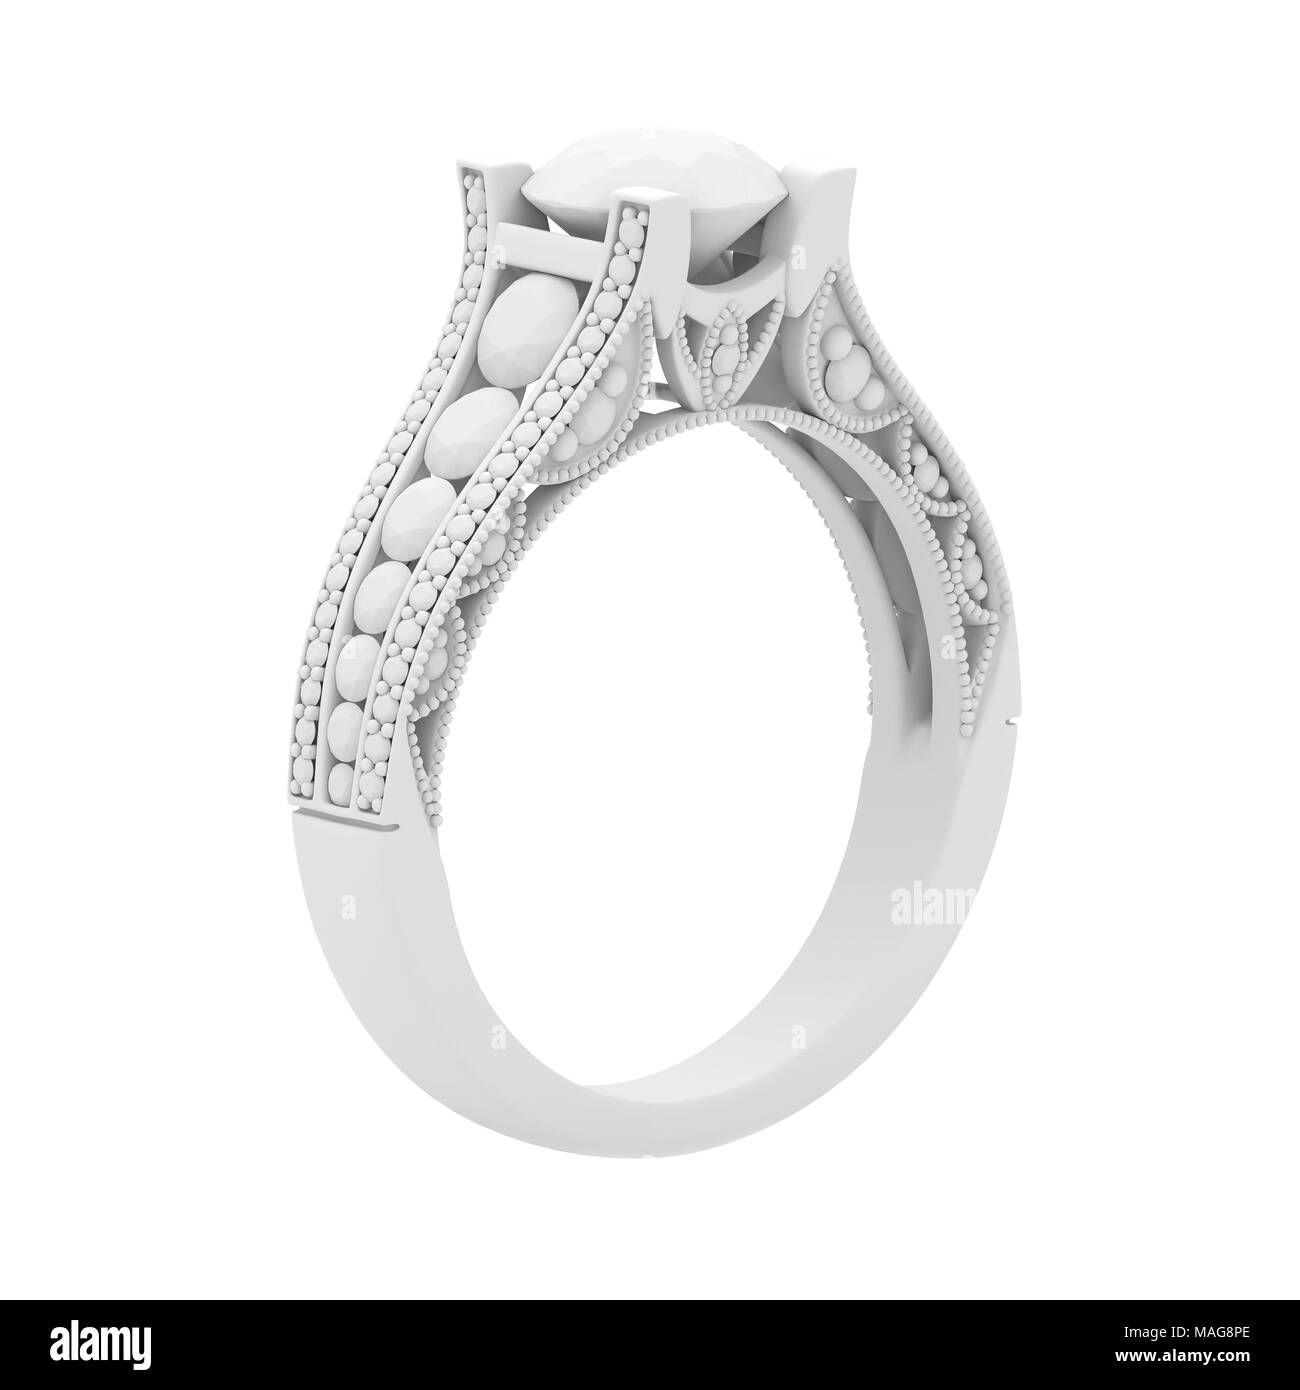 White gypsum cast material jewelry ring of 3d rendering isolate on white - Stock Image